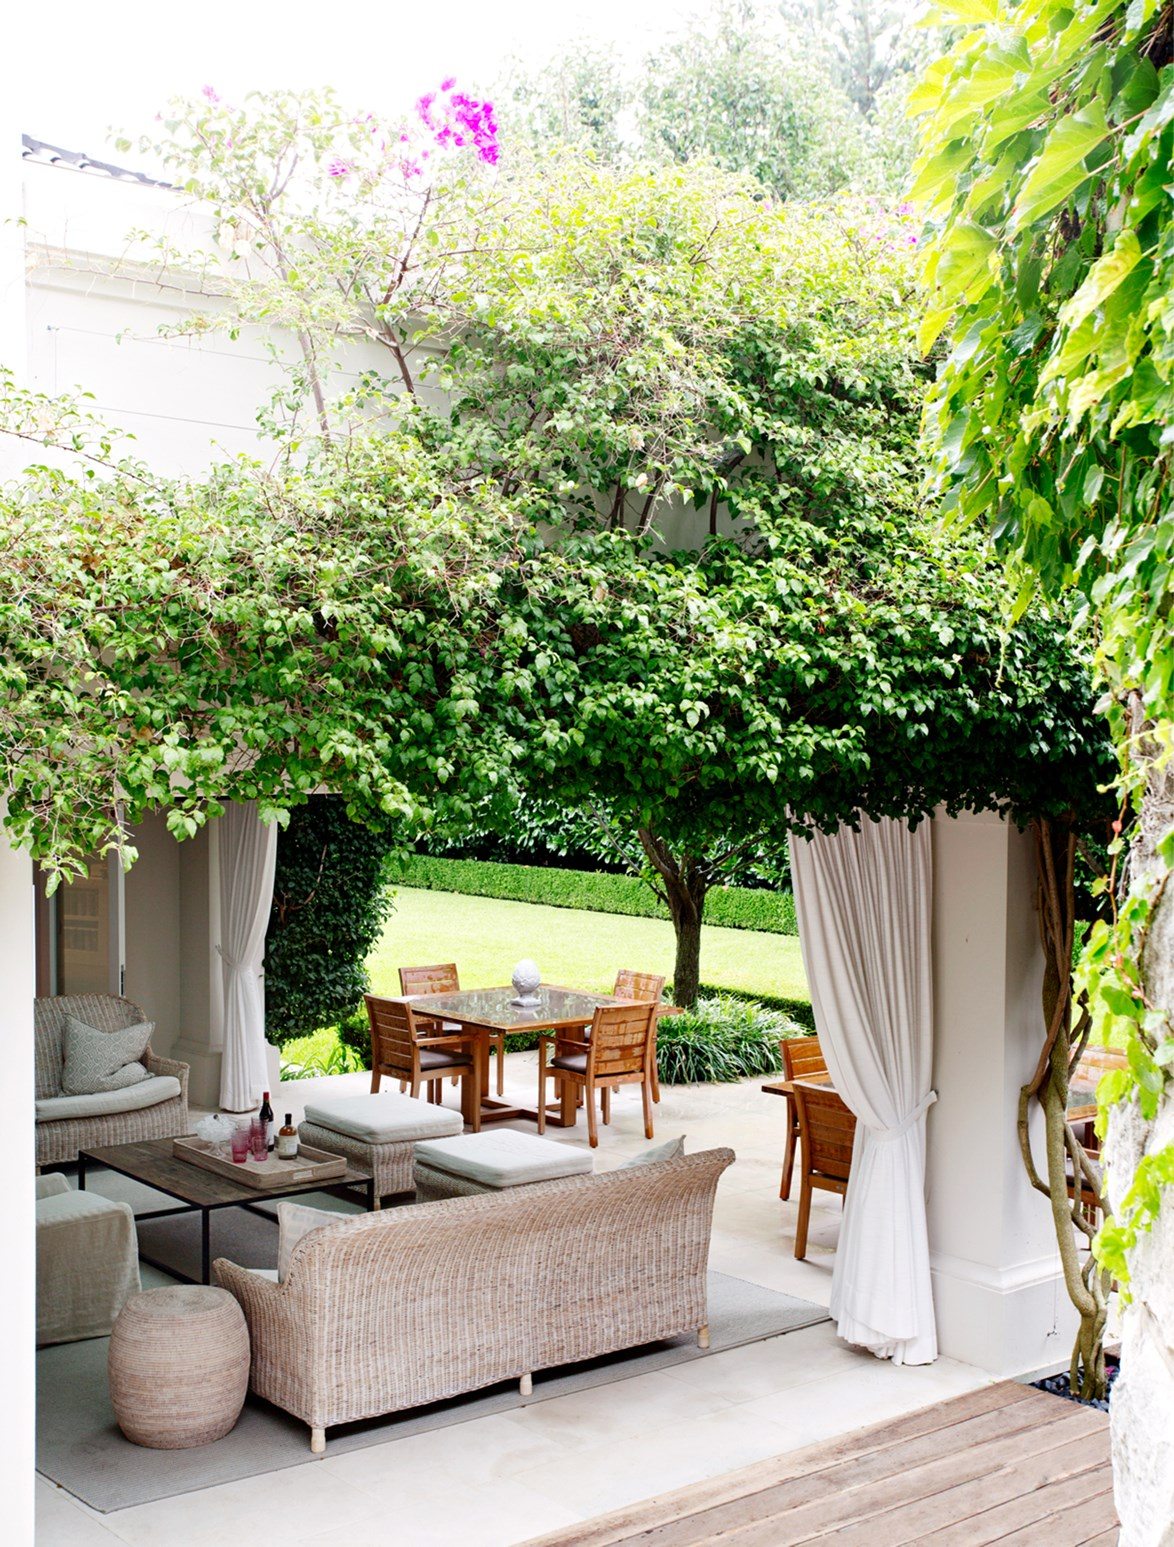 """Beneath a leafy pergola is a [sublime outdoor entertaining space](https://www.homestolove.com.au/20-sublime-spots-for-entertaining-4638